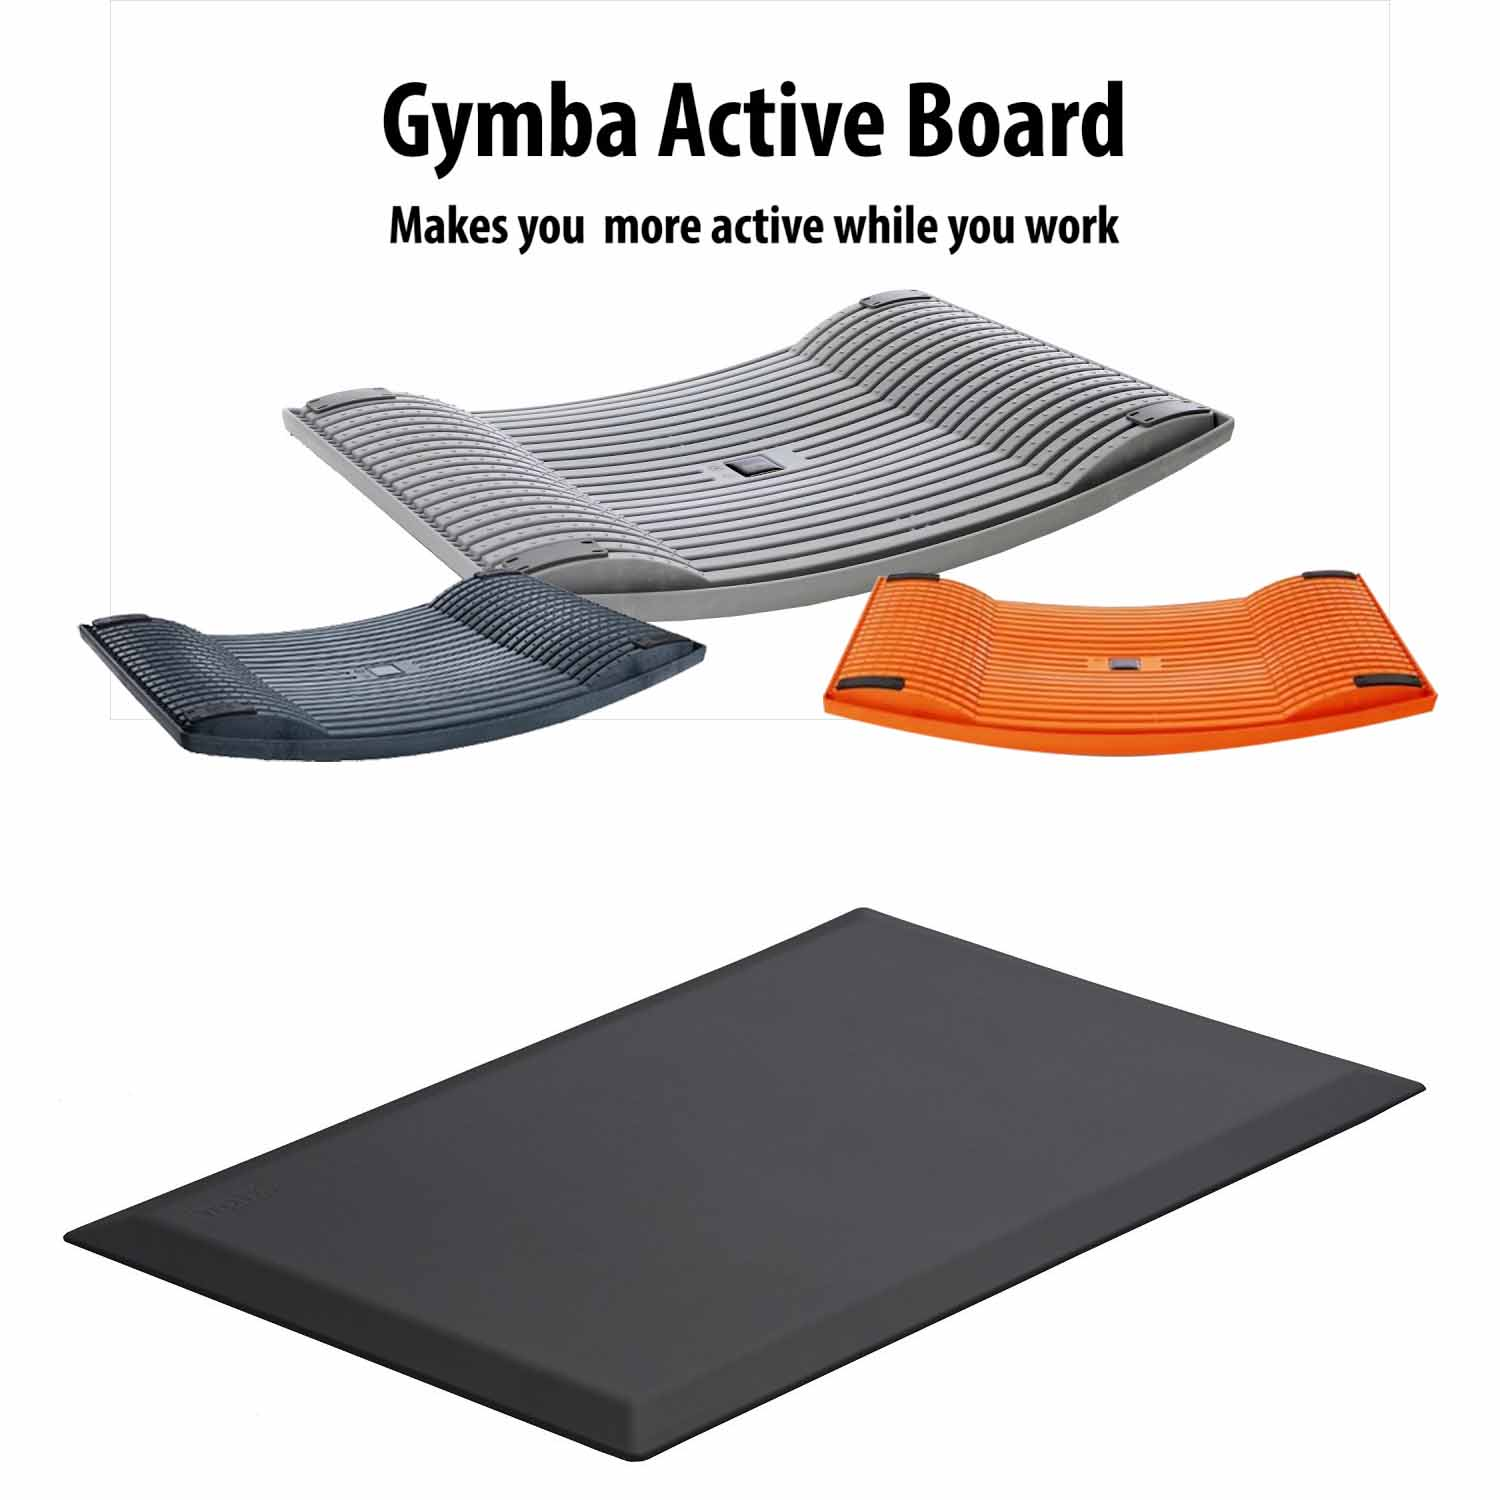 Floor Mats & Activation Boards